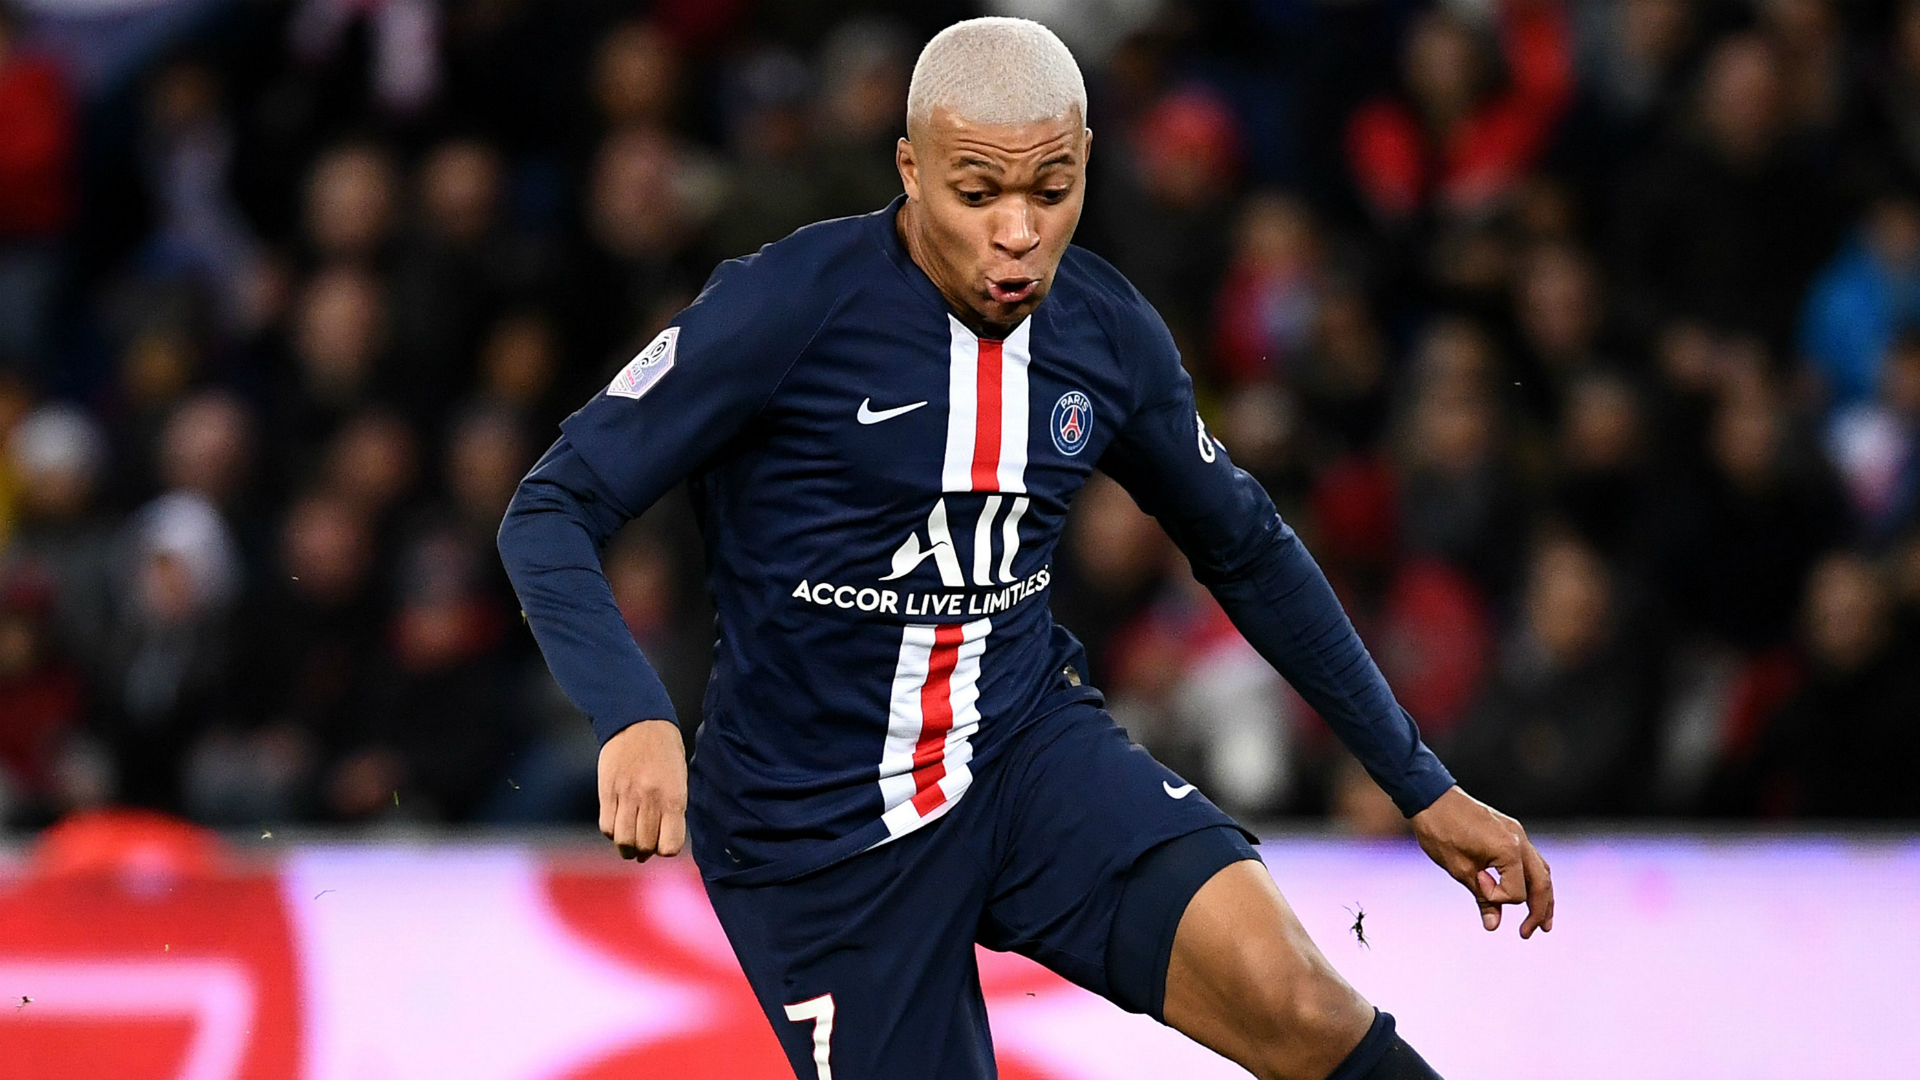 Rumour Has It: PSG offer Mbappe €32m in yearly wages amid Madrid links